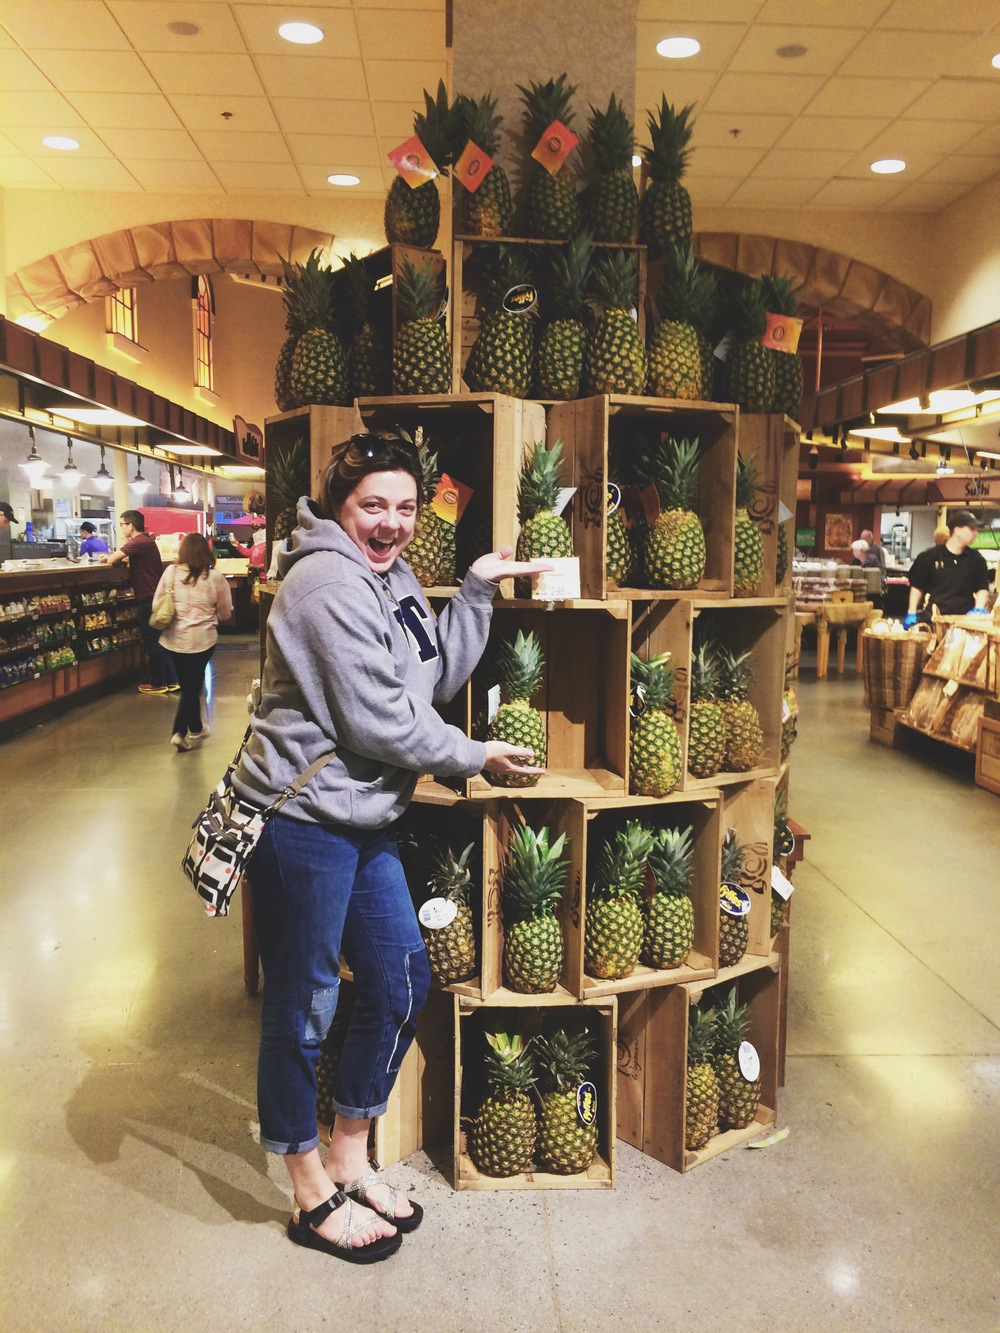 I couldn't not include this photo. I mean really. Wegman's is the place of dreams. A tower stacked high with fresh pineapples!